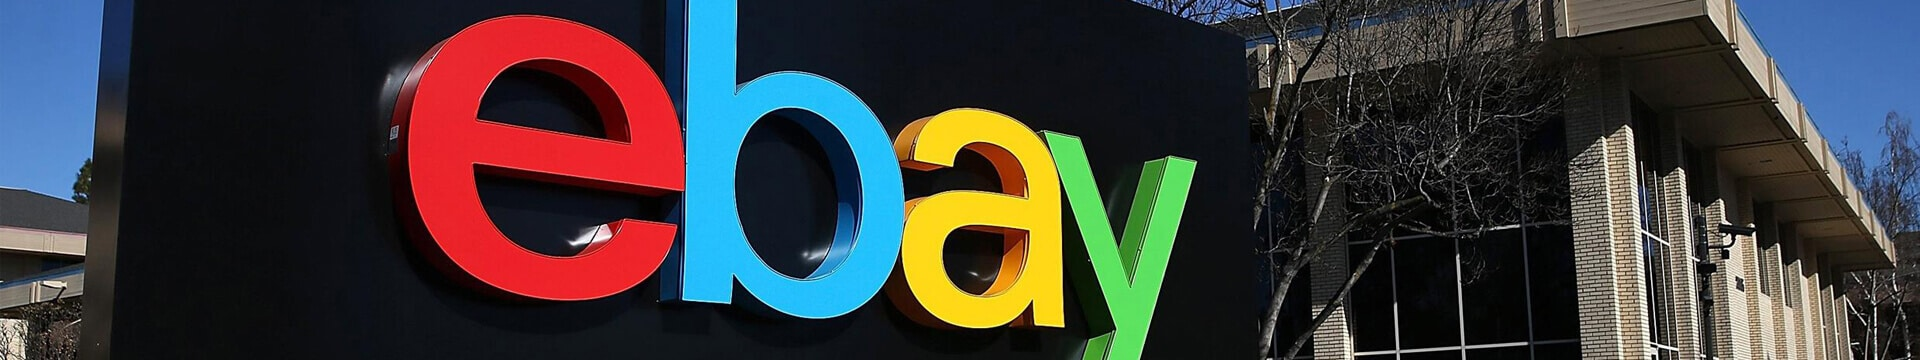 How to integrate Ebay with Magento